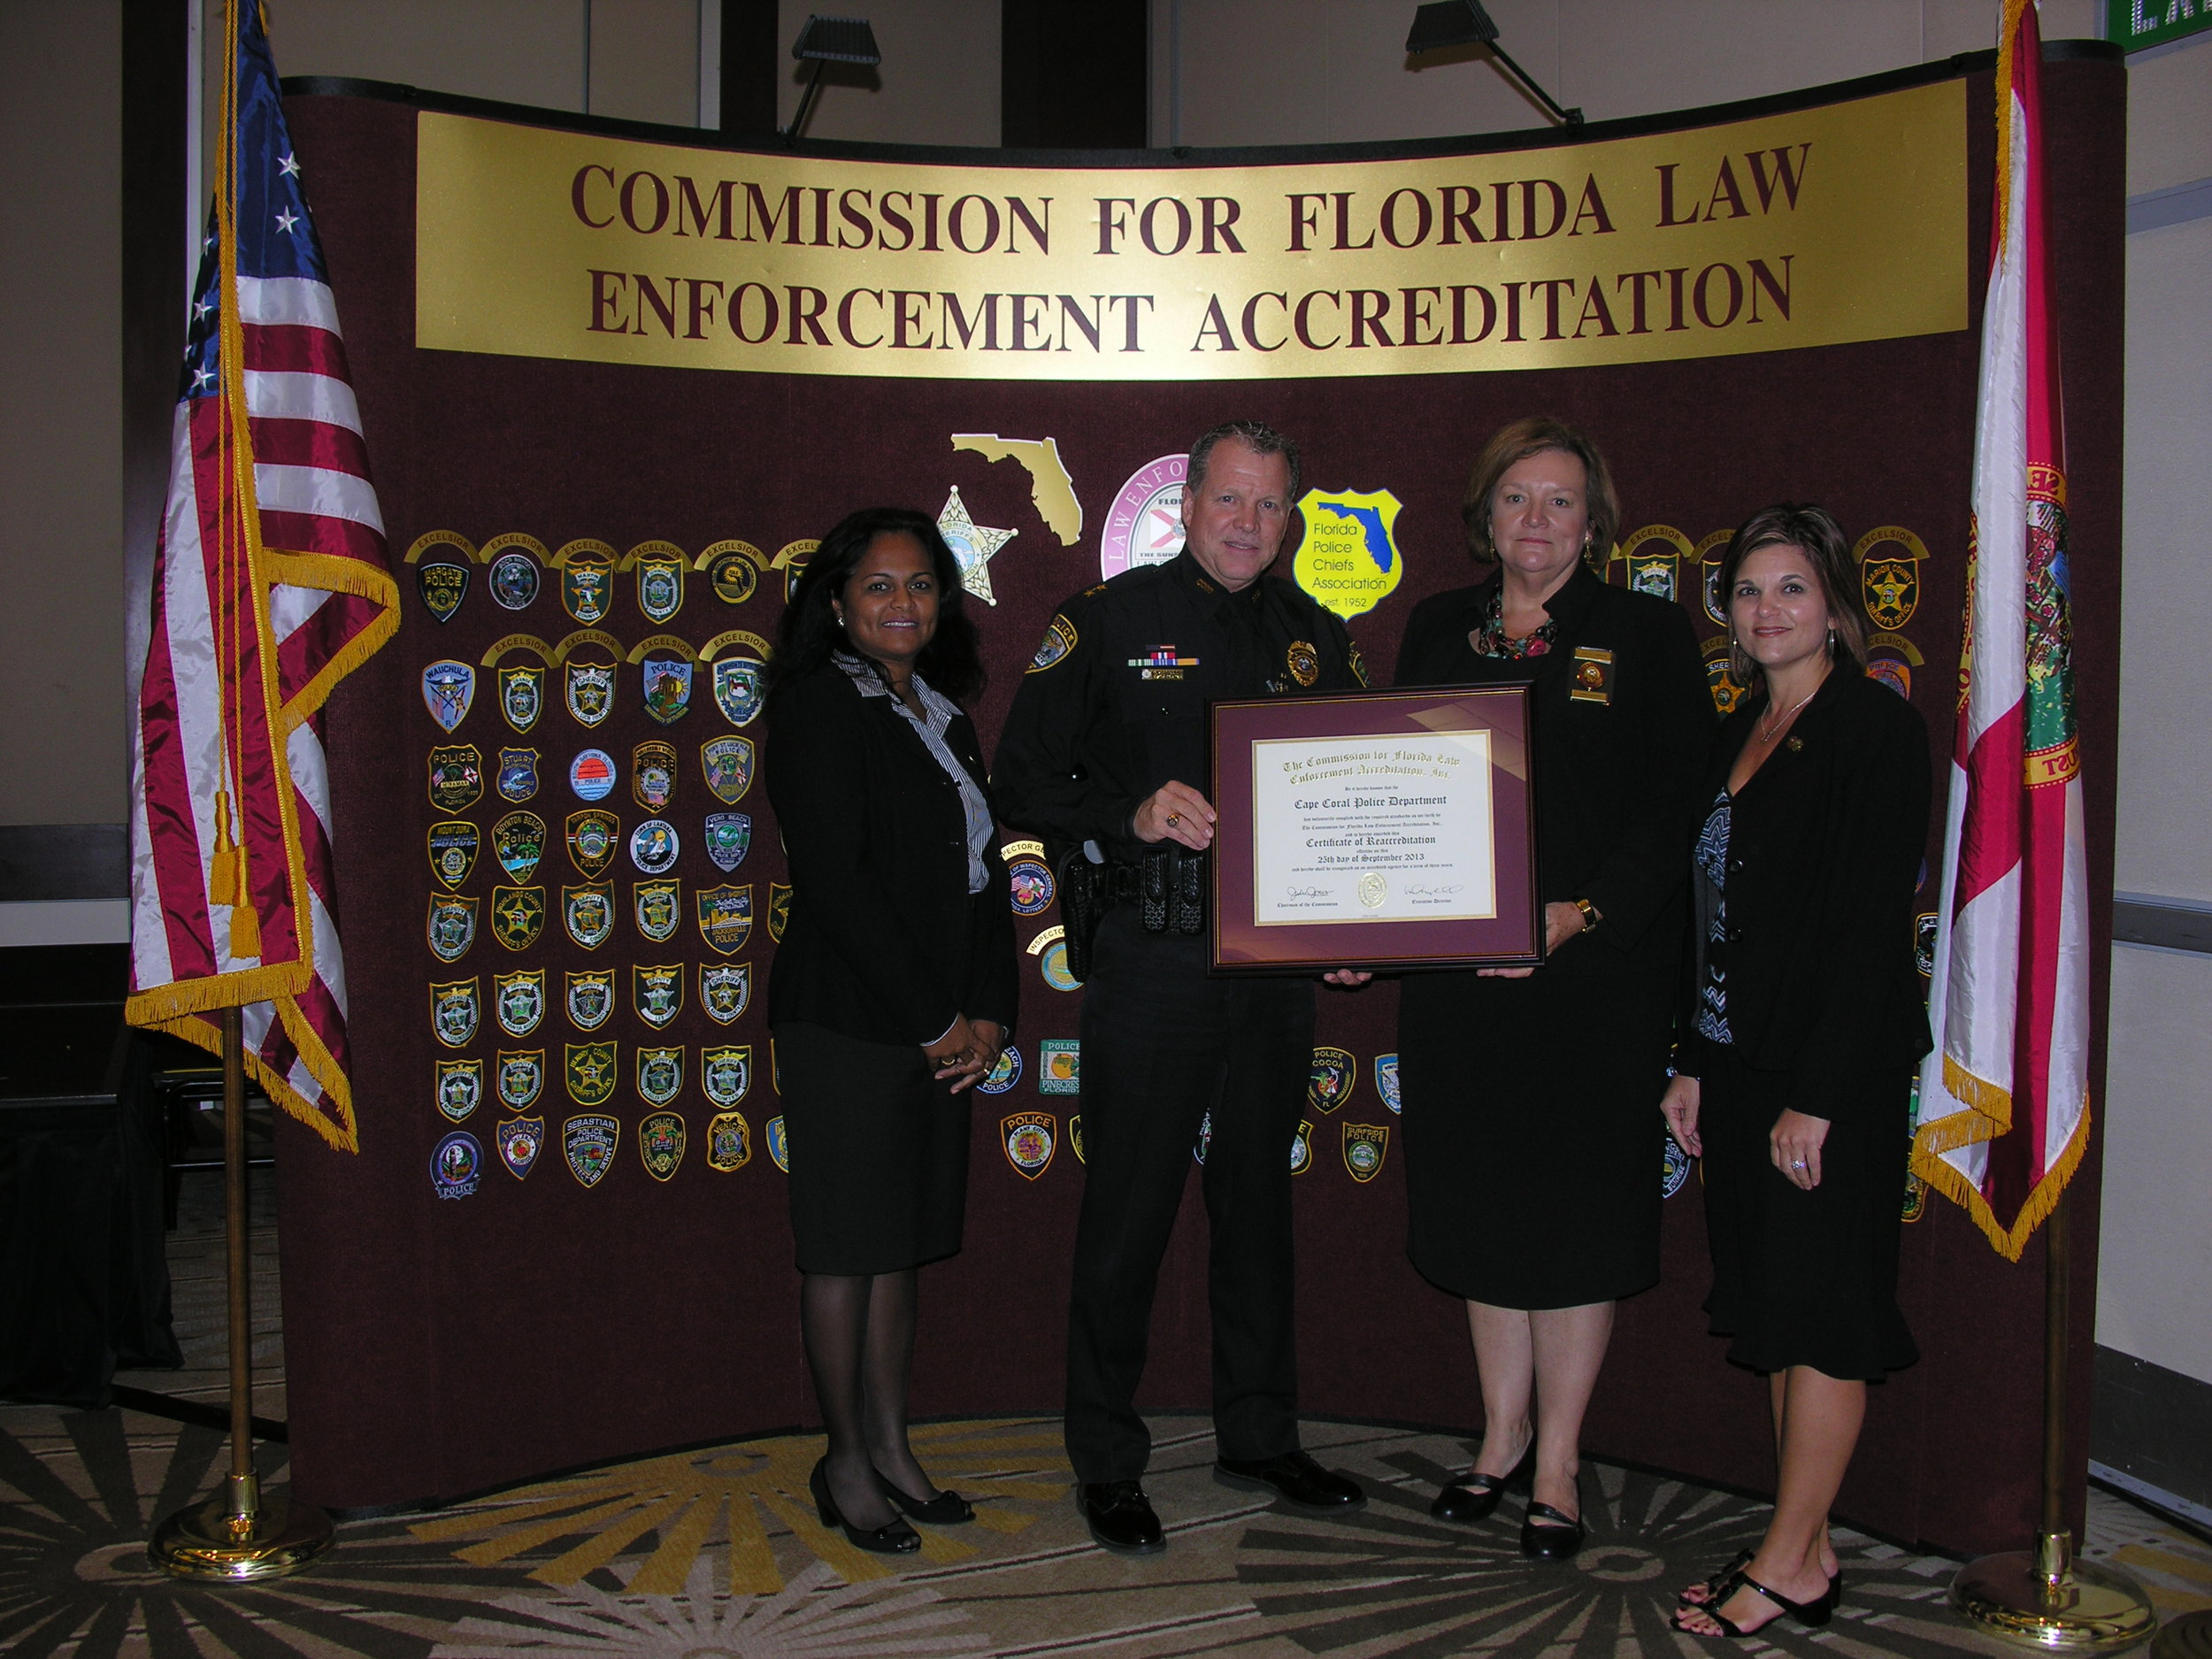 """PHOTO: in this Photo, interim Chief of Police Bart Connelly and Accreditation Manager, Anella """"Joy"""" Nyack are presented with a Certificate of Accreditation at a meeting held in Sarasota, FL on September 25, 2013. (Photo Courtesy of Cape Coral Police Department)"""